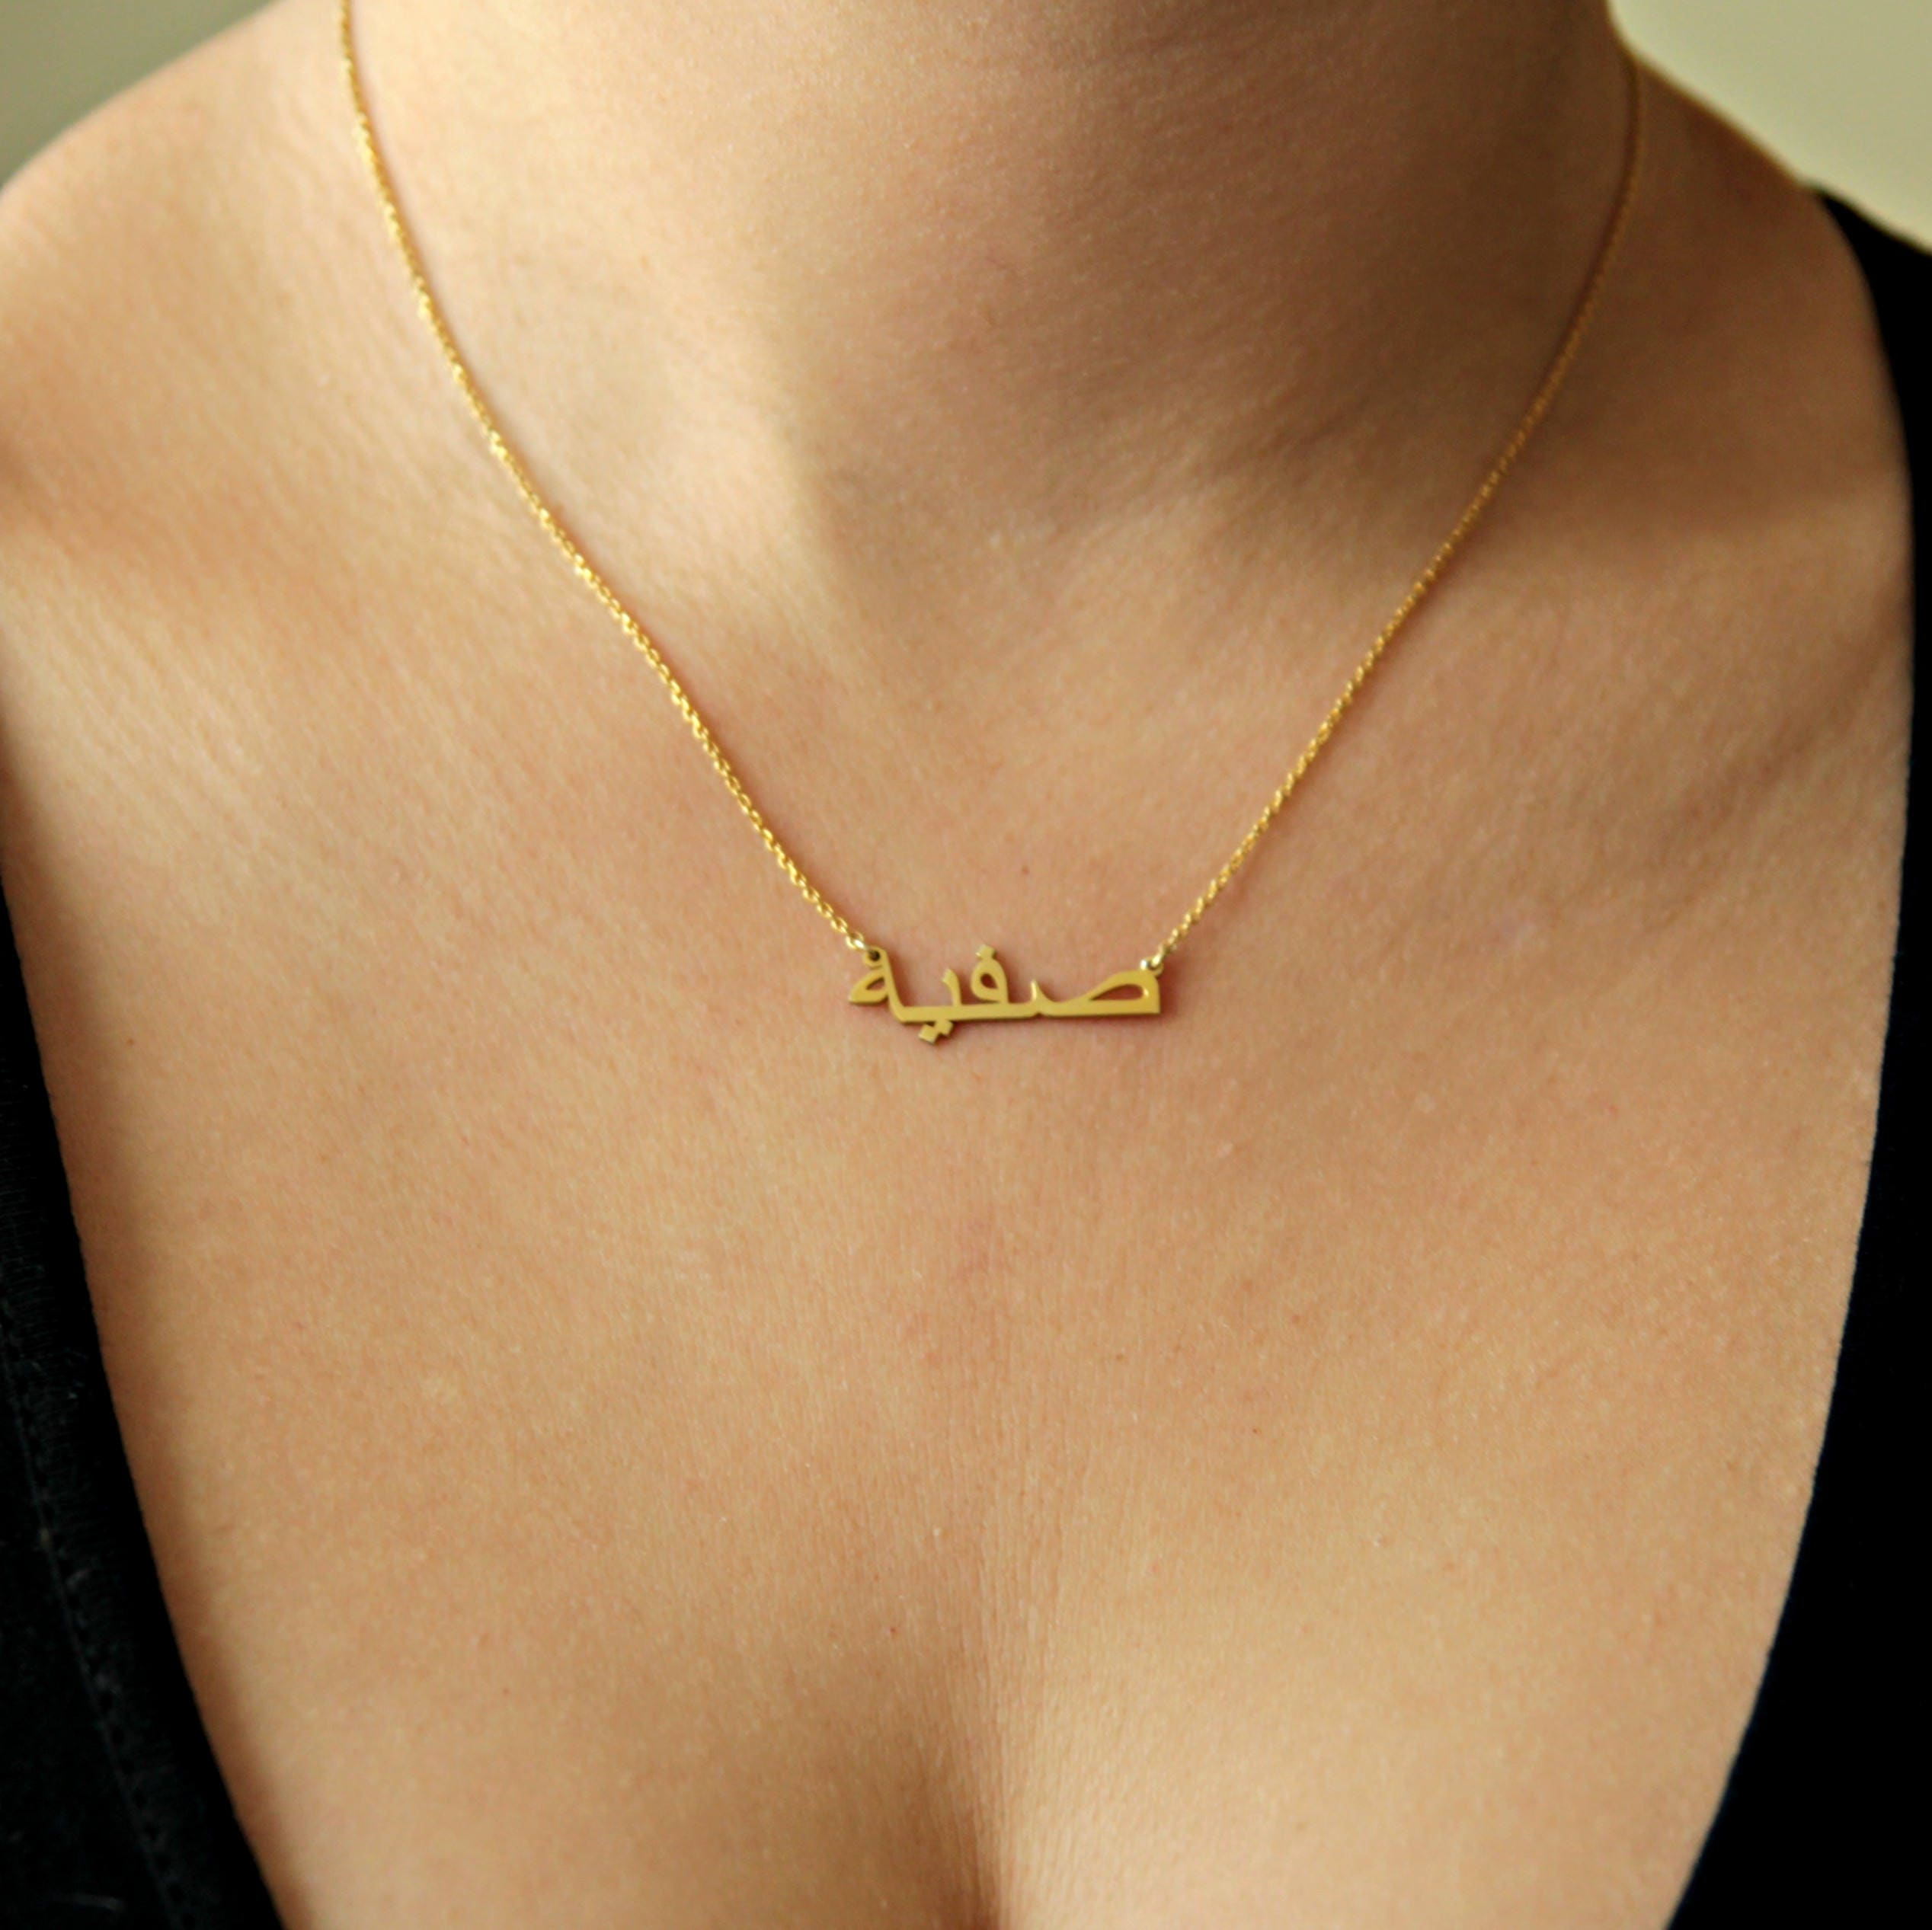 eina ahluwalia by alhamdulillah products necklace arabic in